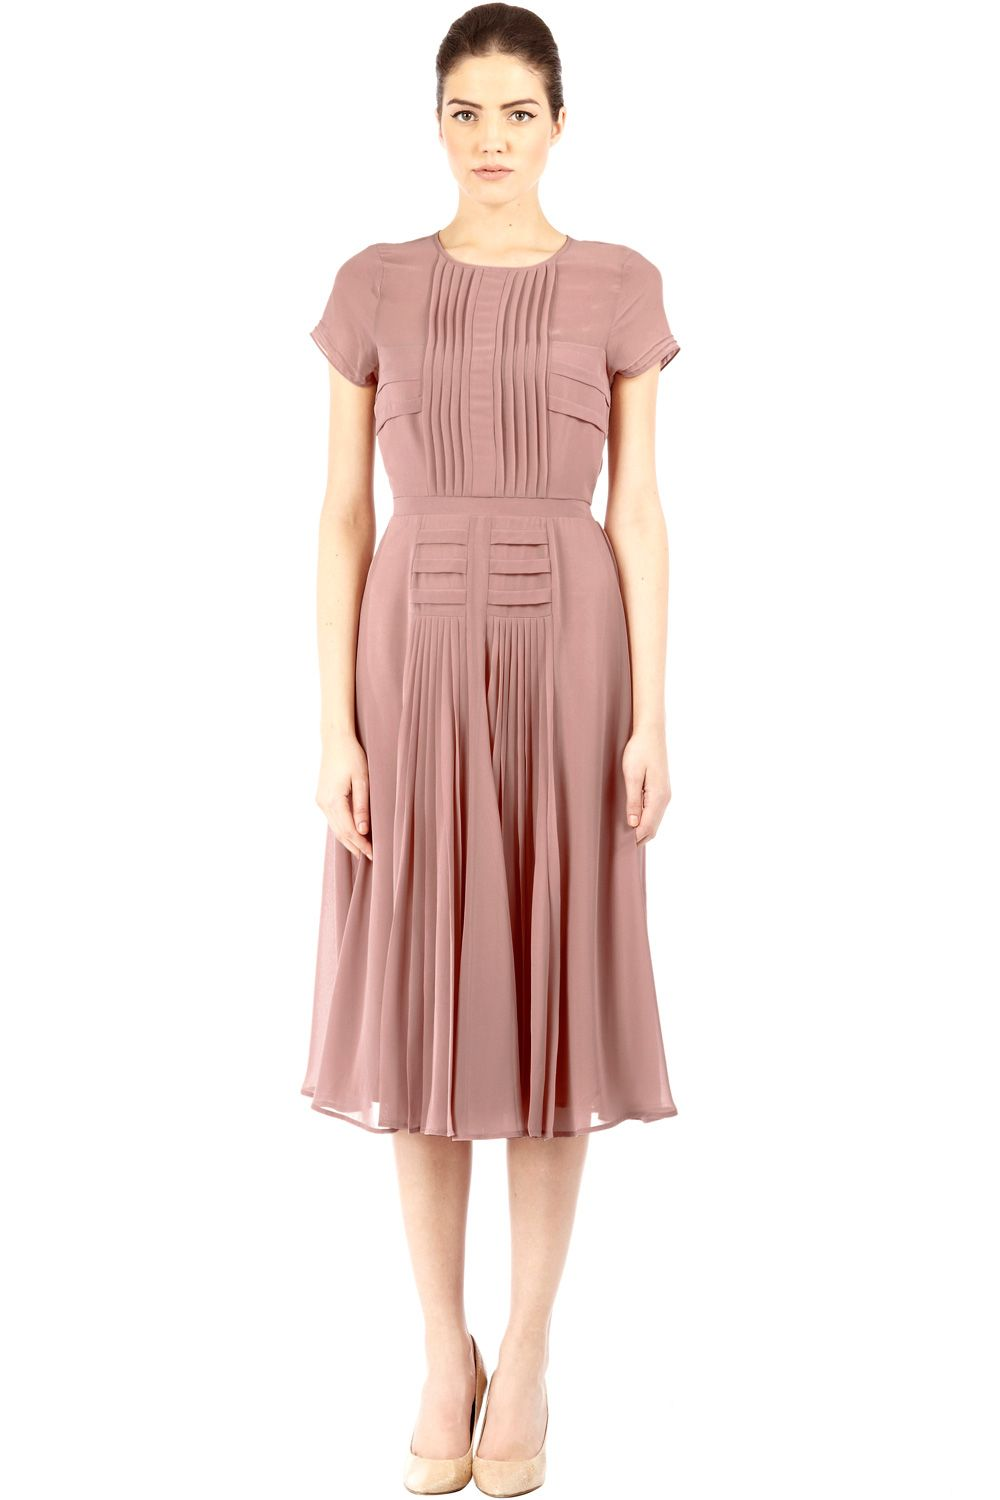 8b630bf87cd7 Nude | Pink Pleated Bodice Skirt Midi Dress. | Warehouse | clothes ...